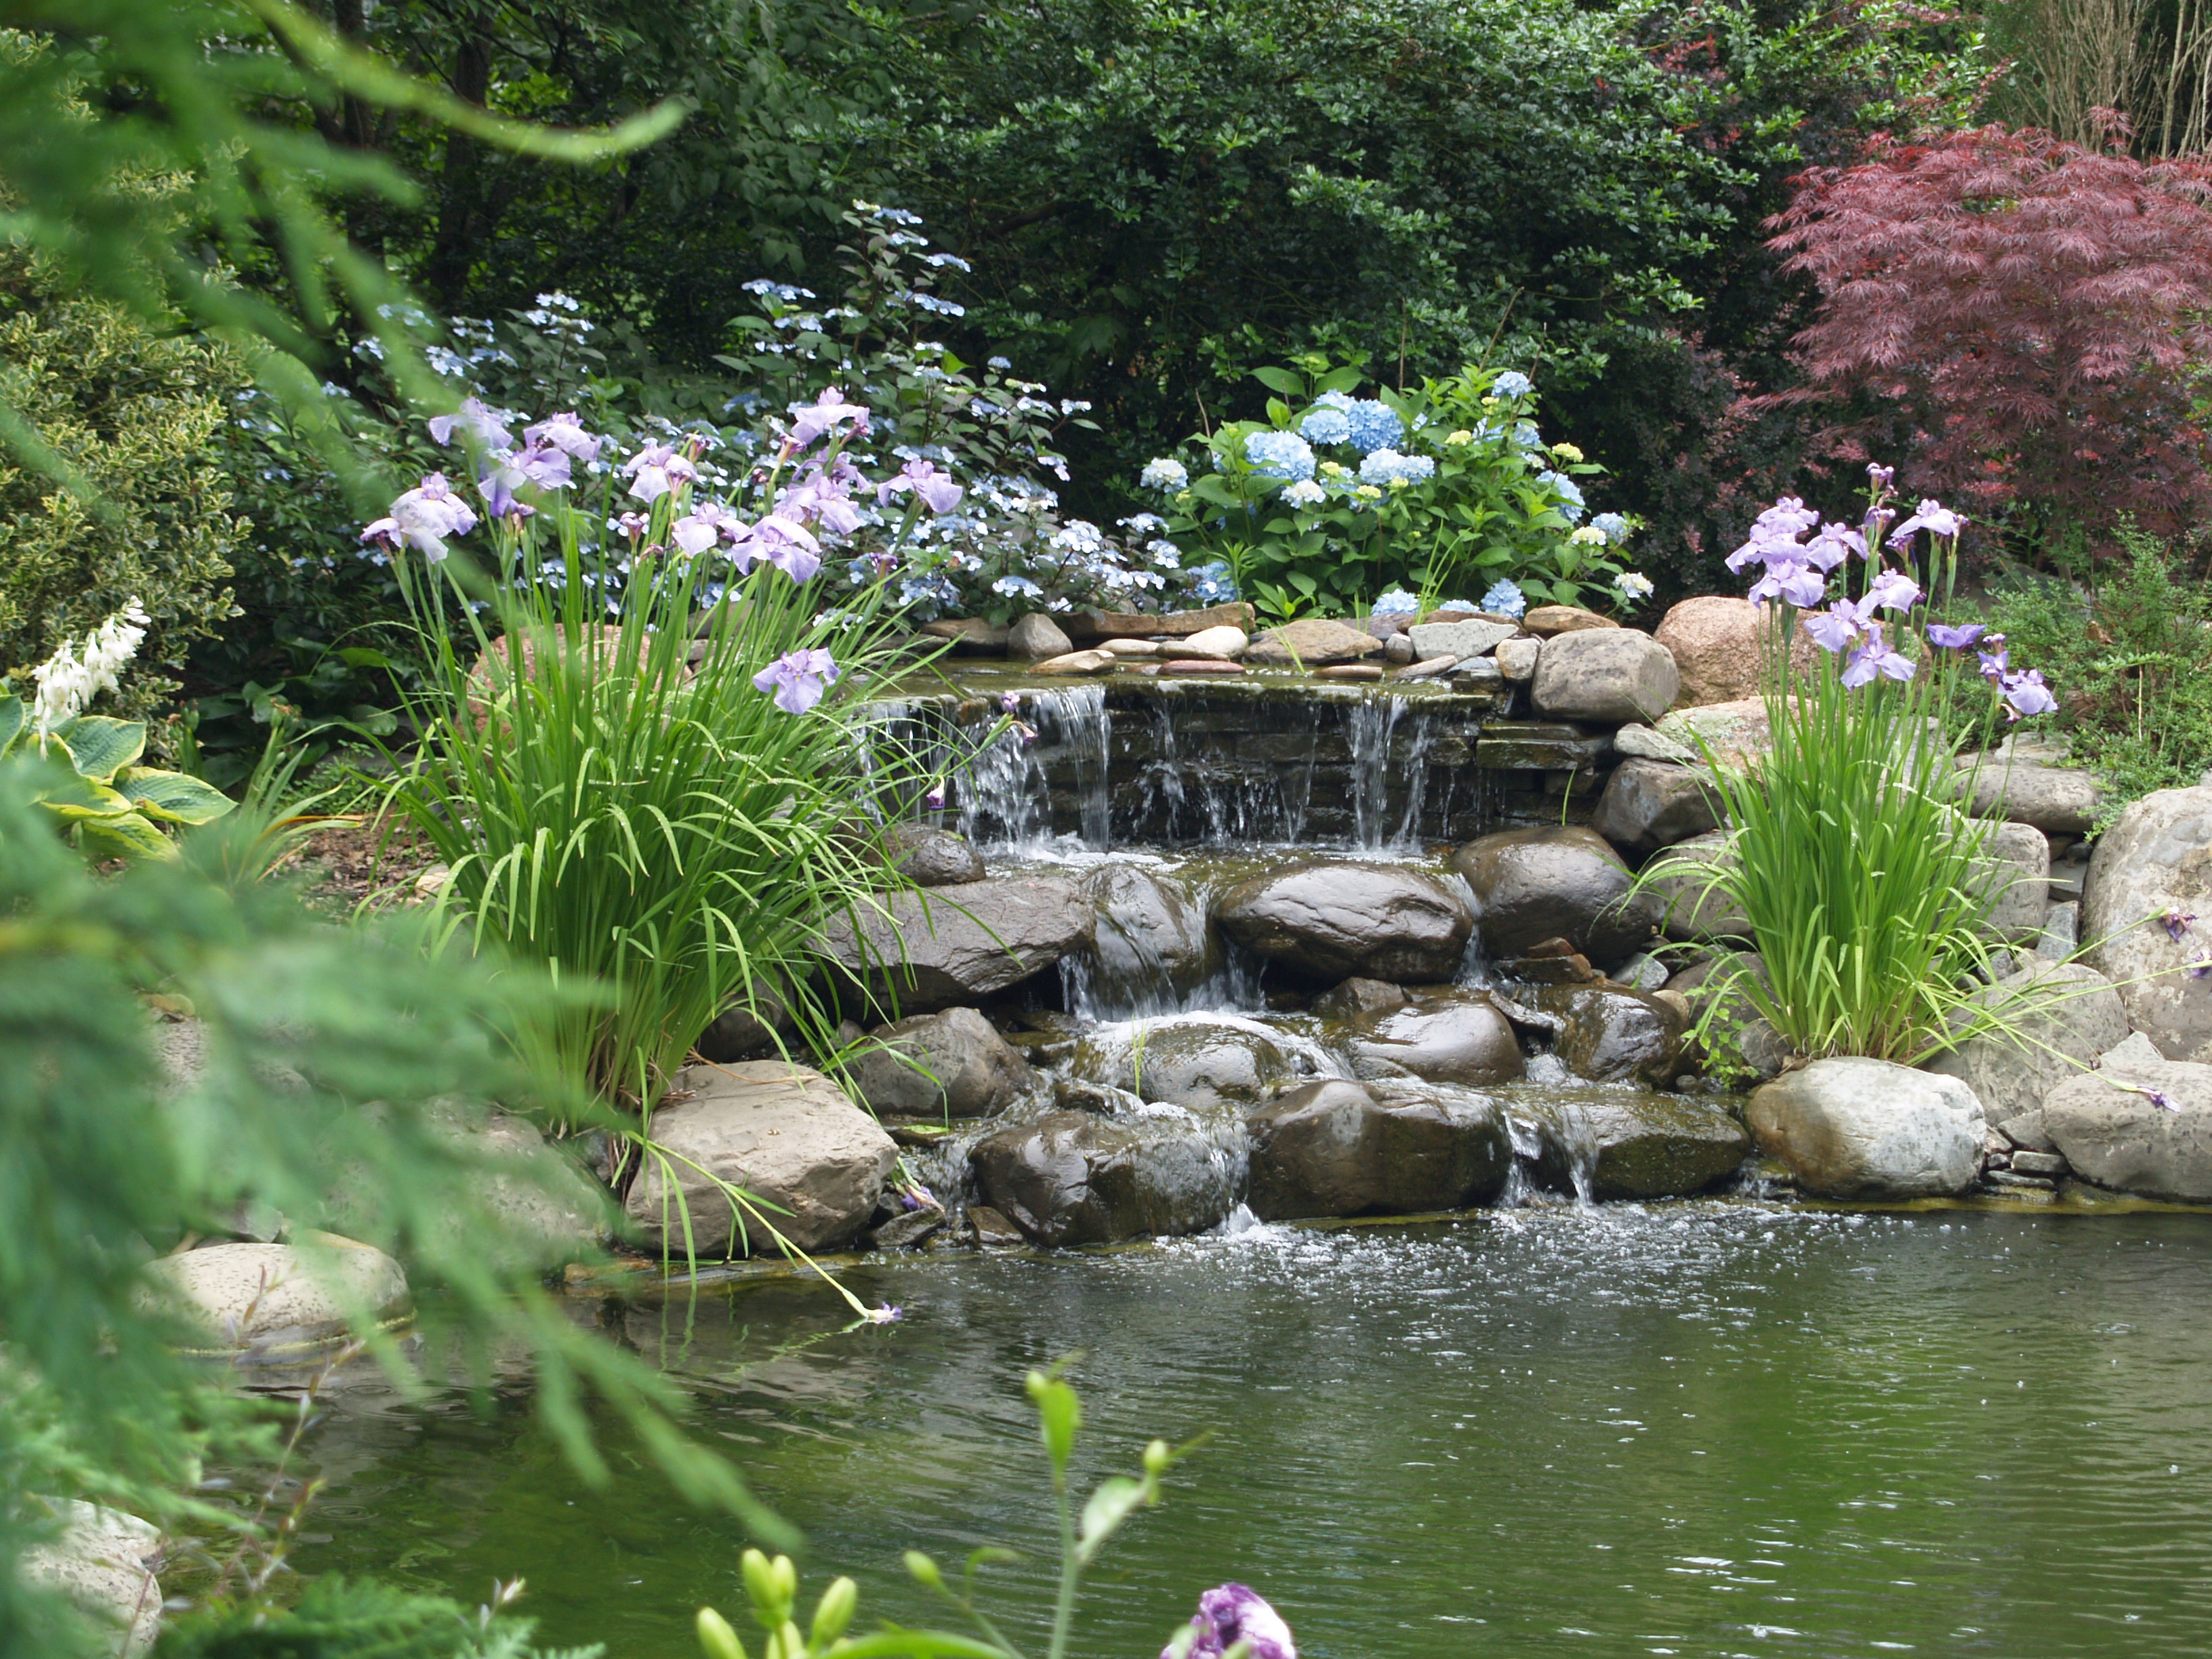 Garden ponds are a delight ramblin 39 through dave 39 s garden for Using pond water for plants